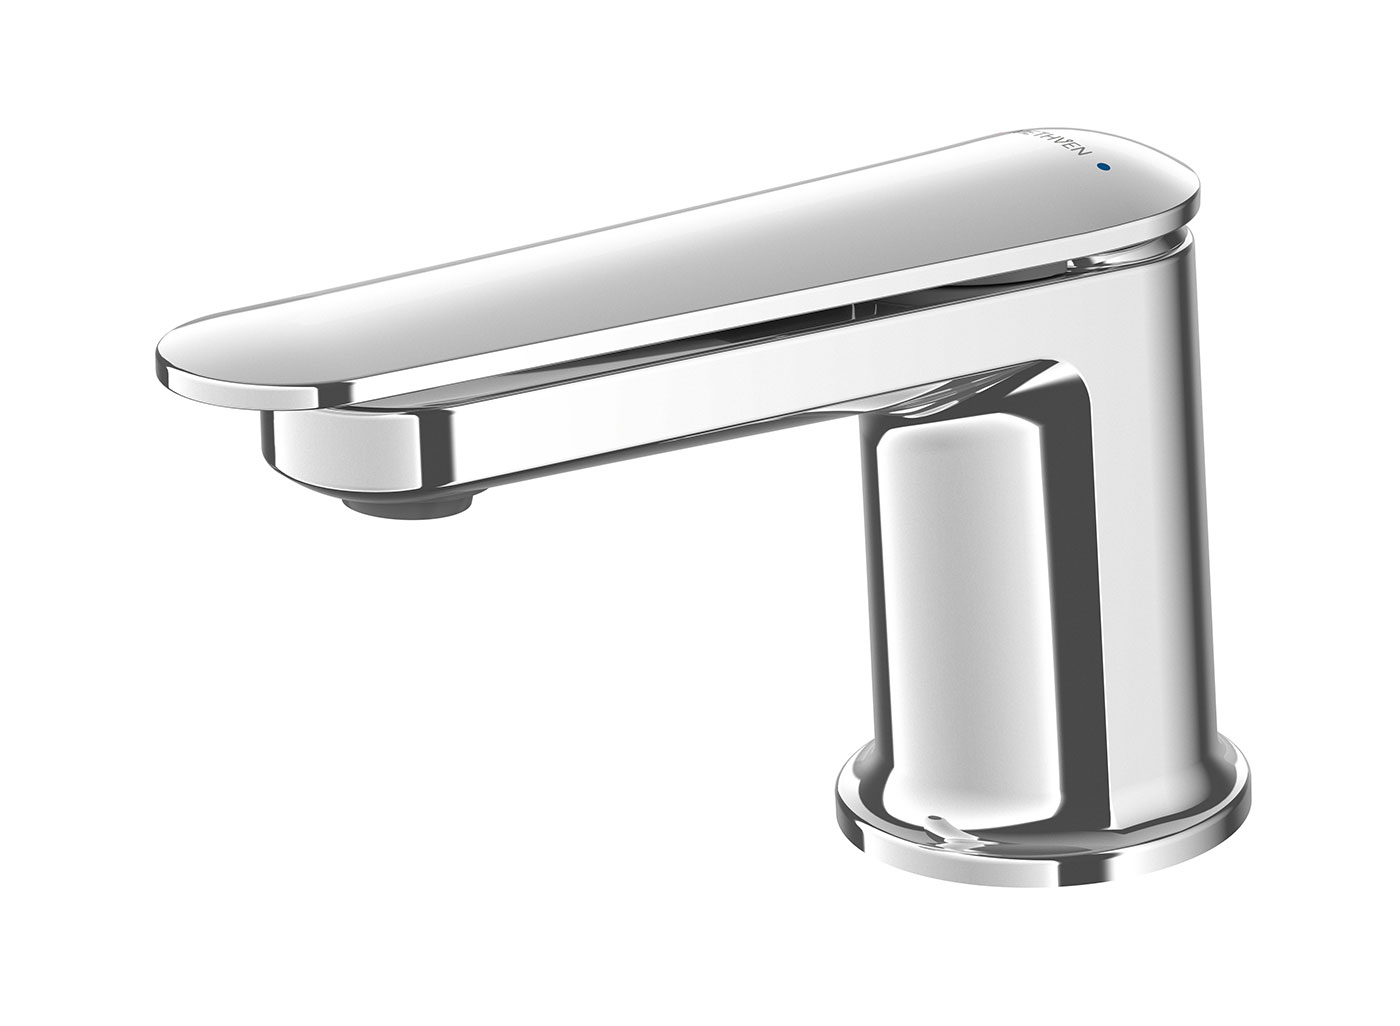 Aio tapware combines intriguing sculptural contours with modern minimalist design. With an integrated lever and body design